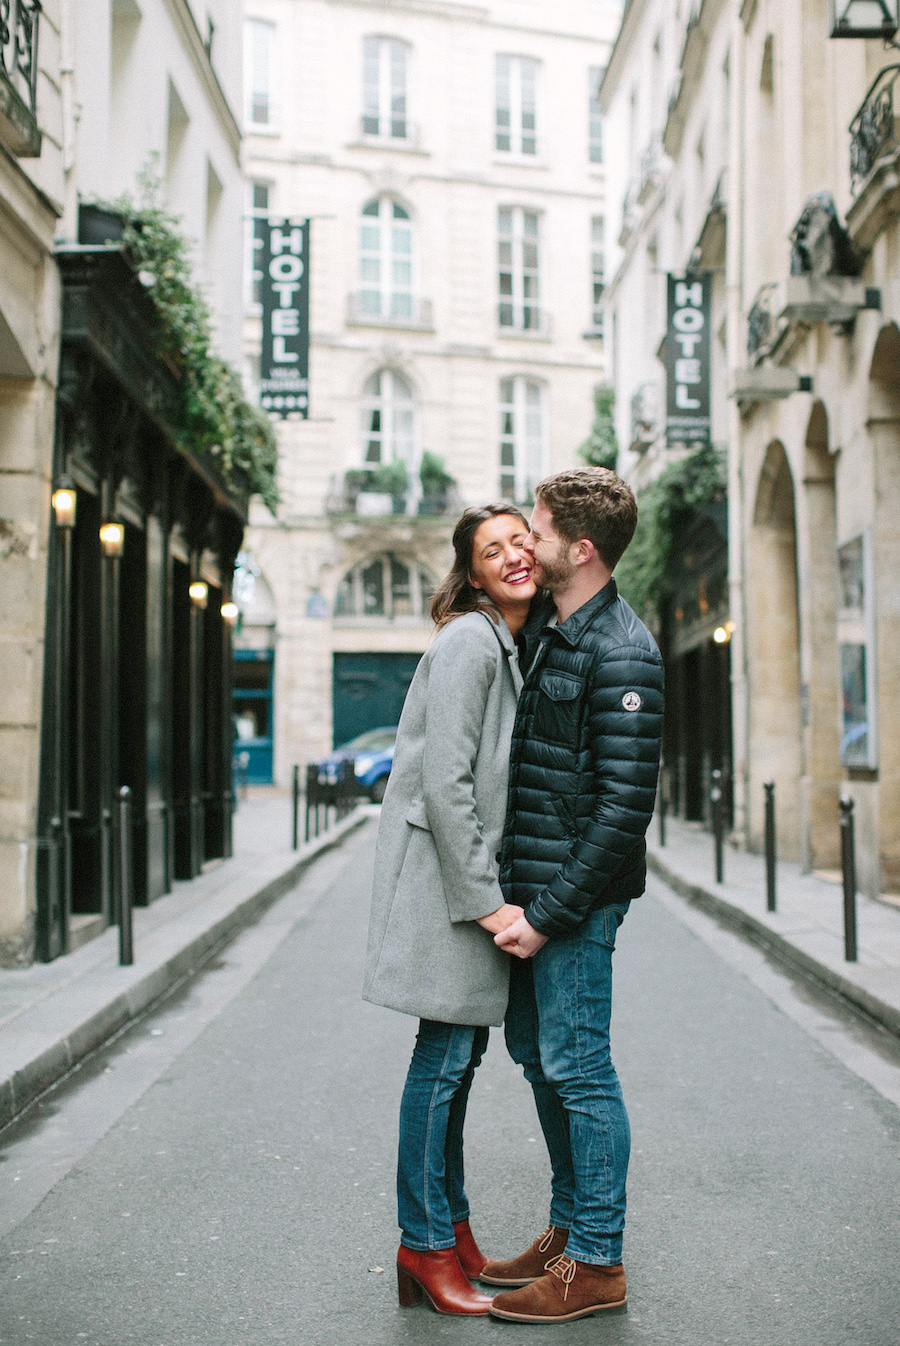 saya-photography-pre-wedding-couple-engagement-paris-quartier-latin-22.jpg